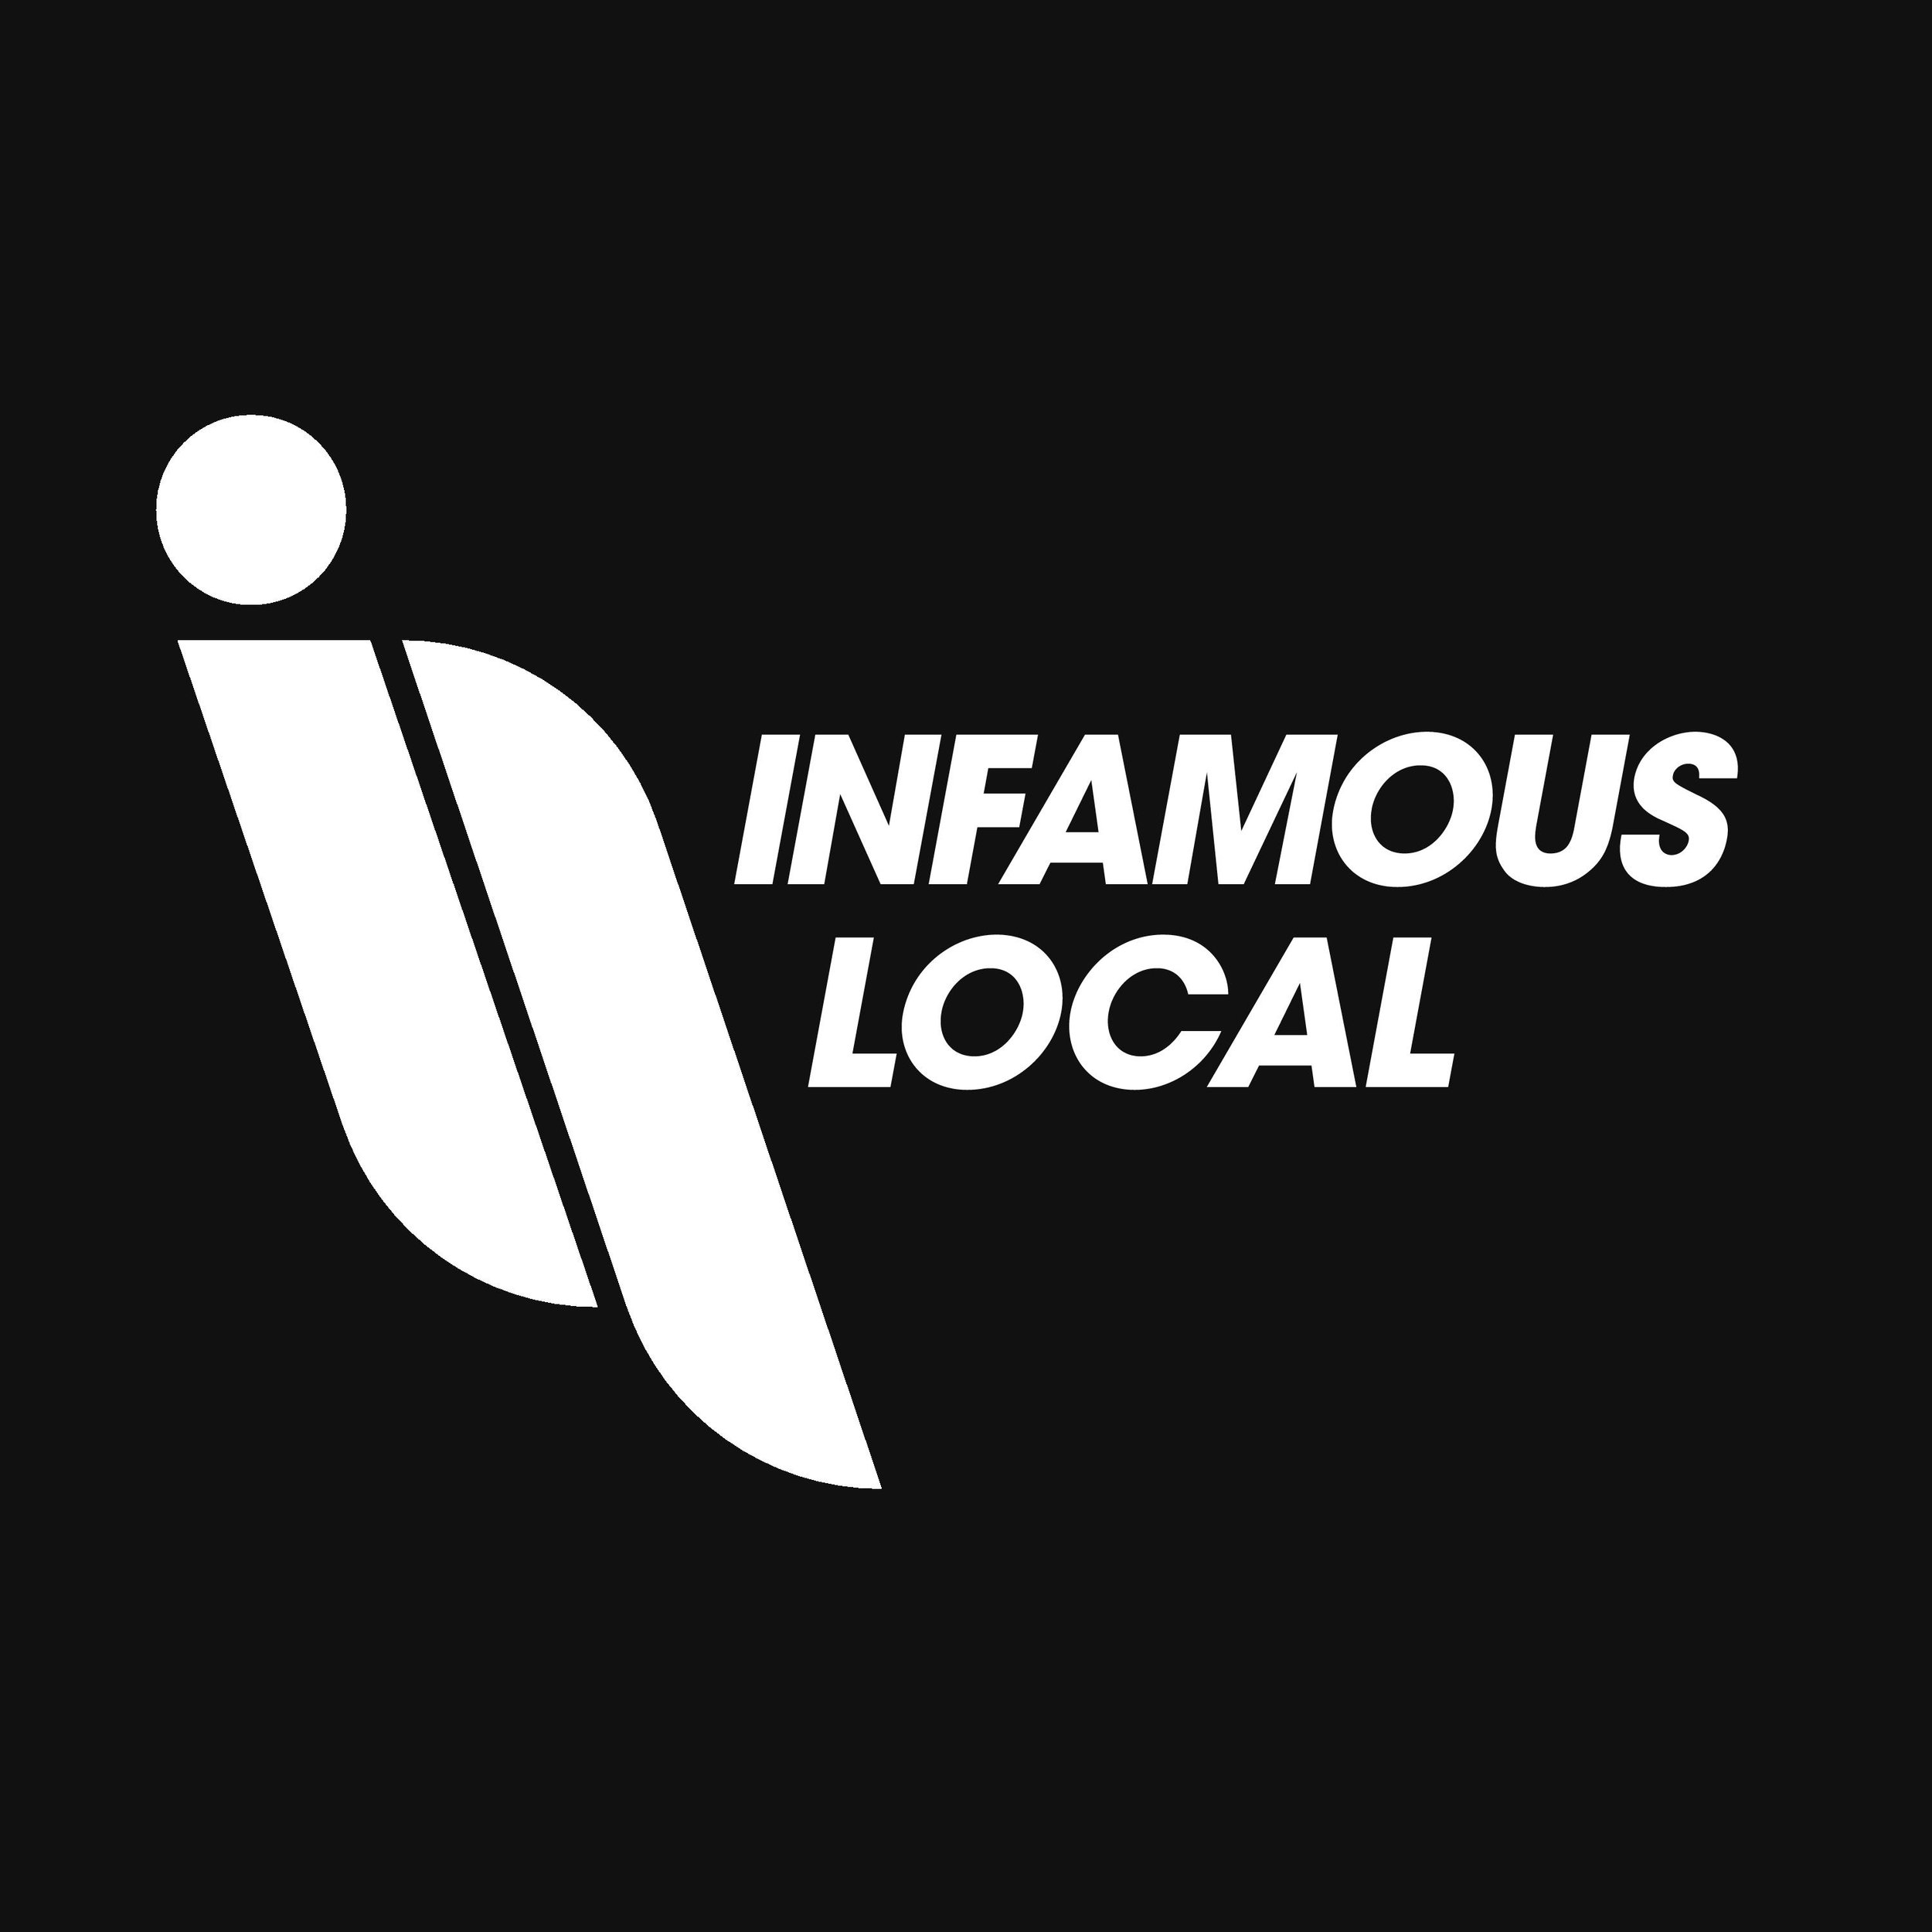 infamous_local_white-page-001.jpg